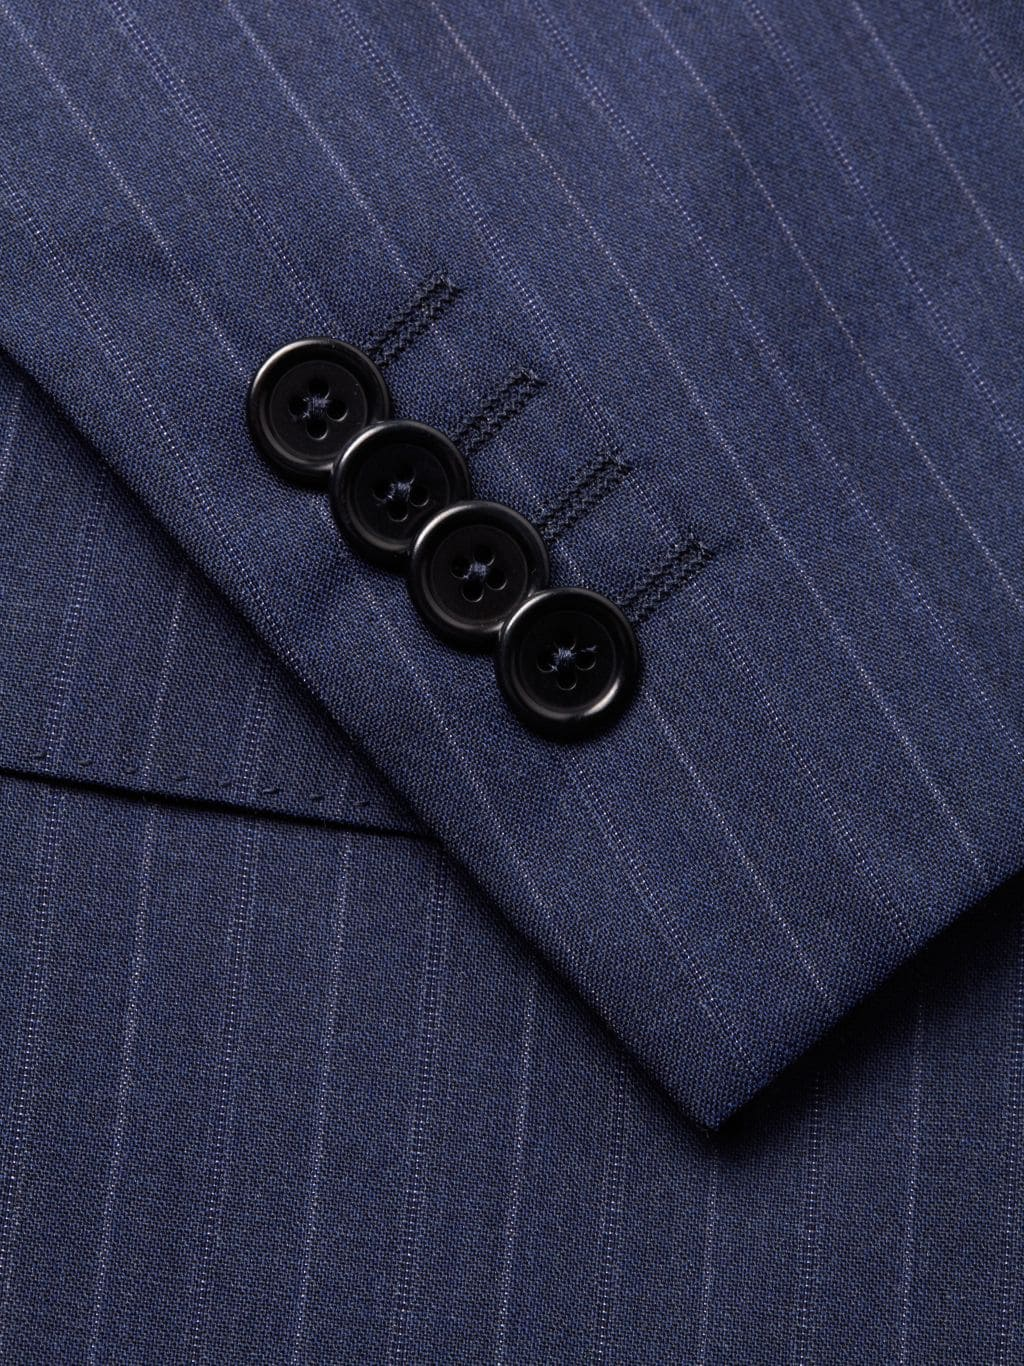 Saks Fifth Avenue Made in Italy Slim-Fit Striped Wool Suit